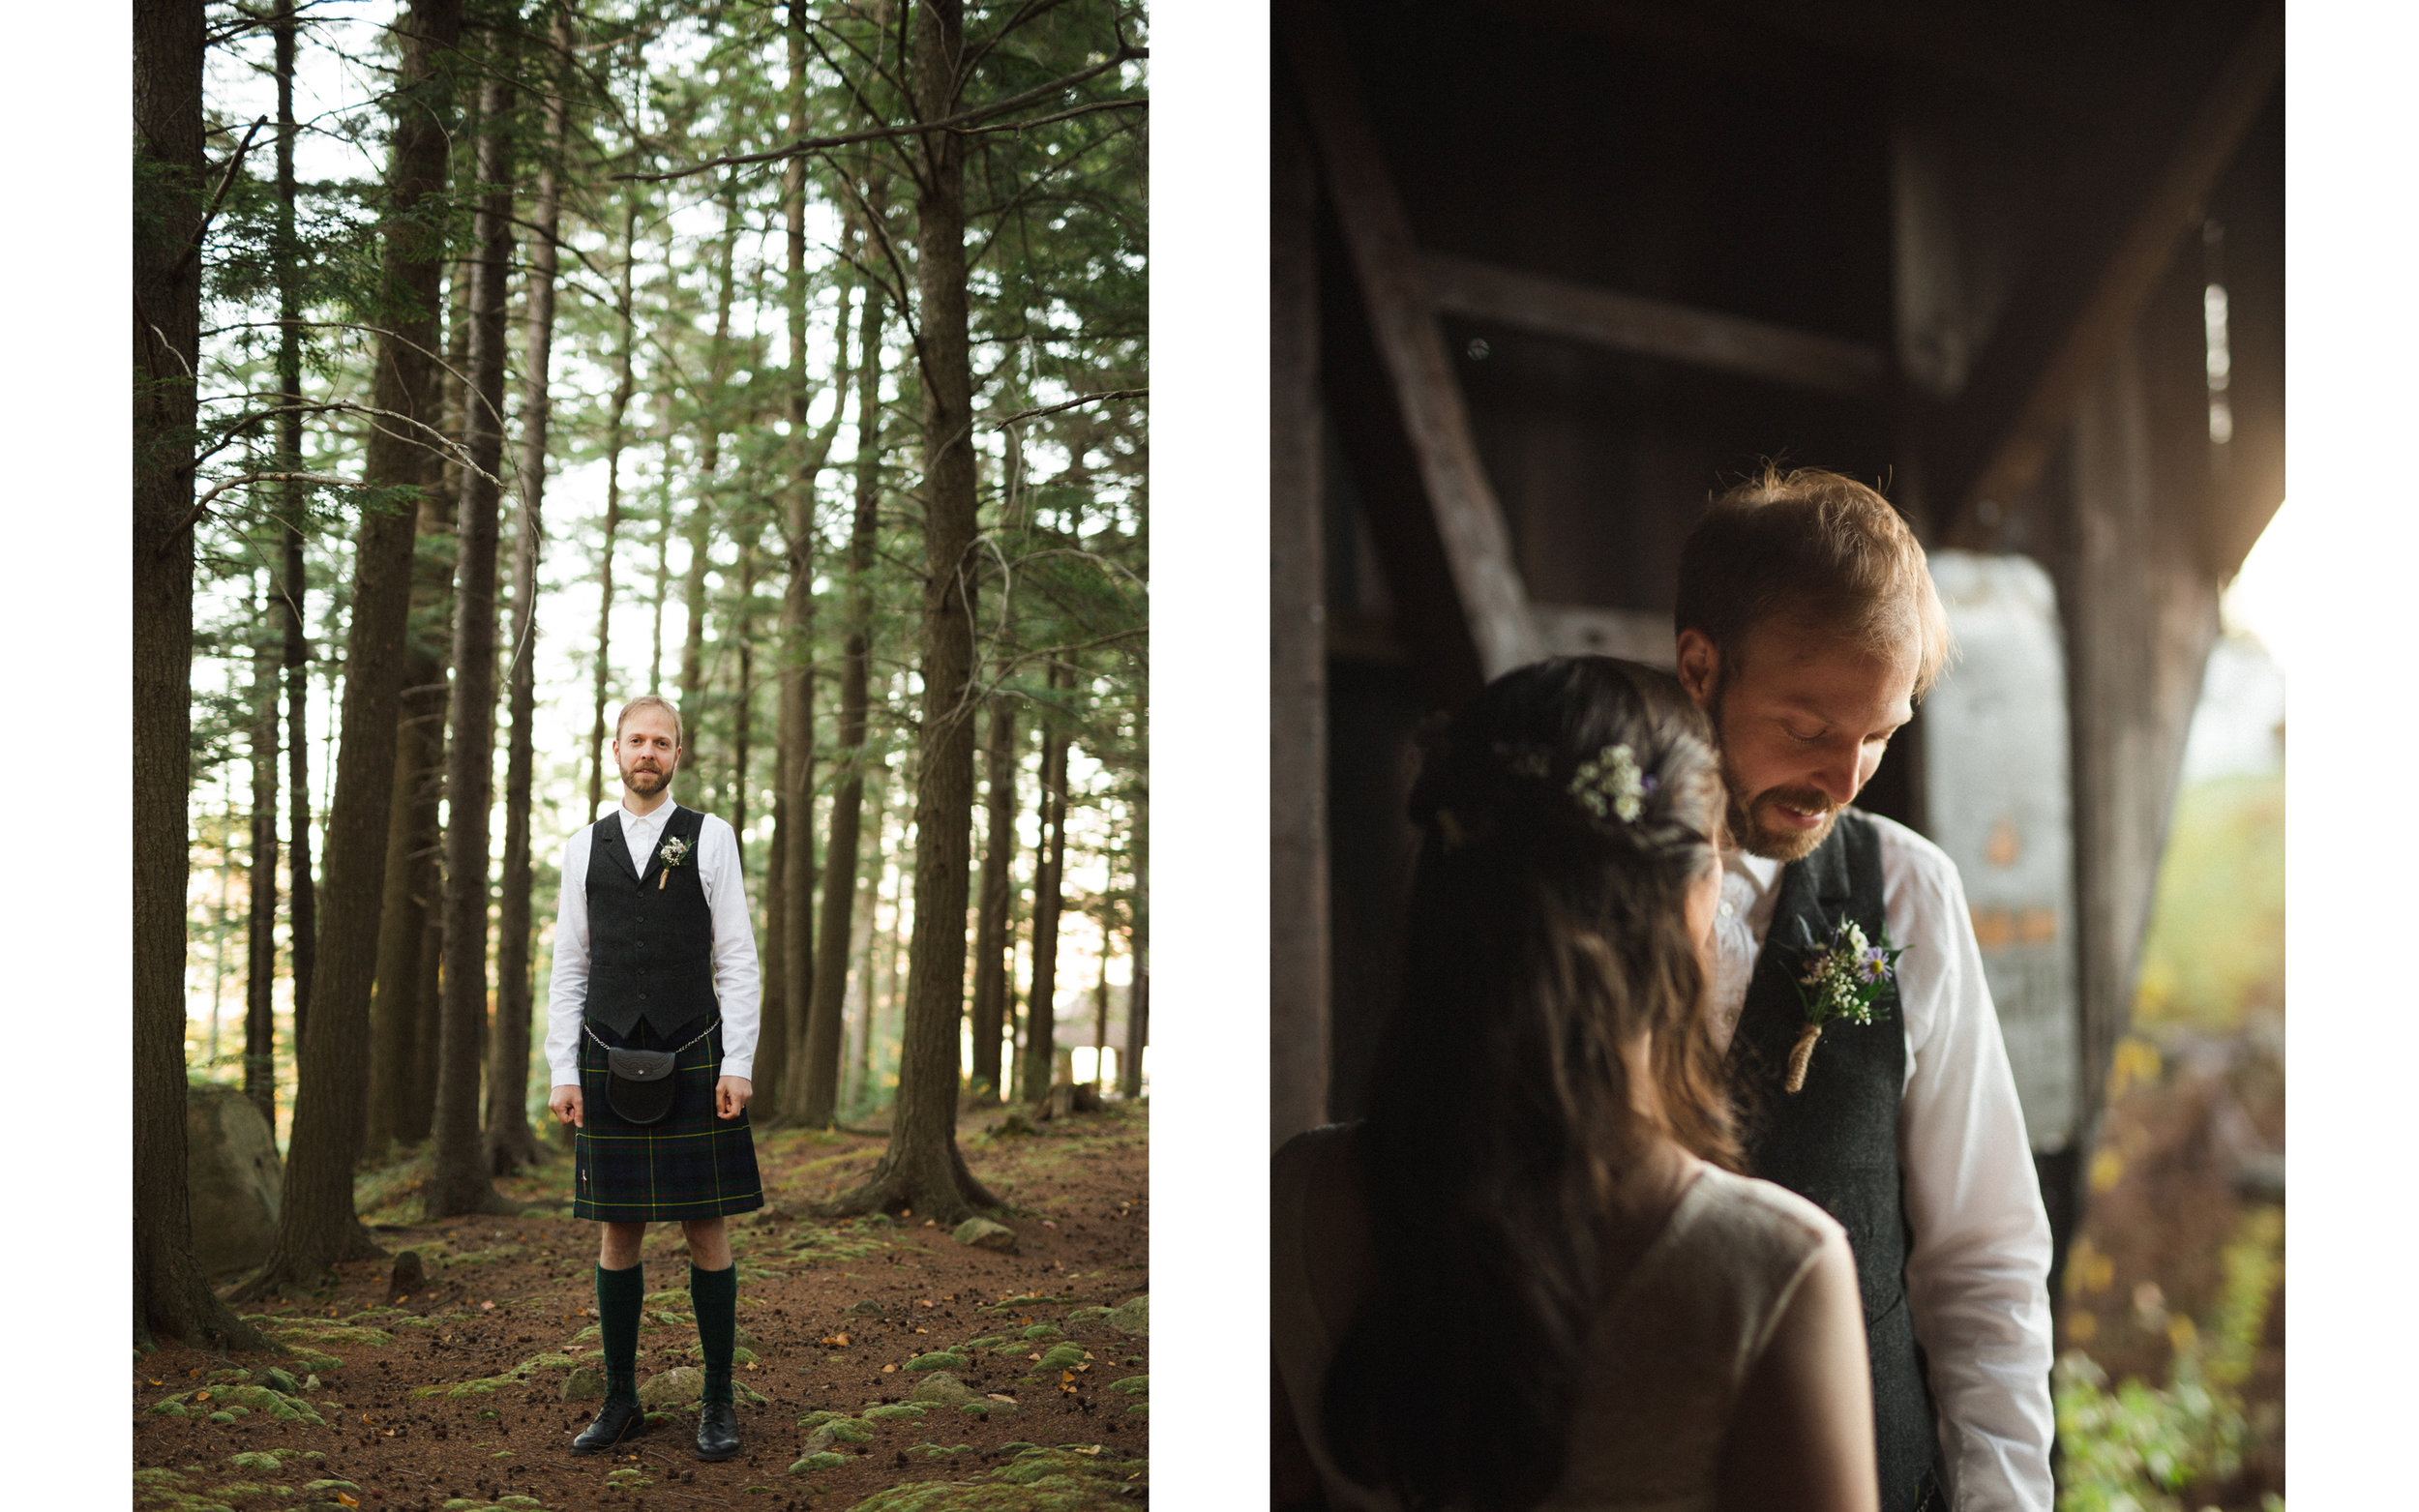 Vermont Wedding Photographer_Meg Haley Photographs_057.jpg